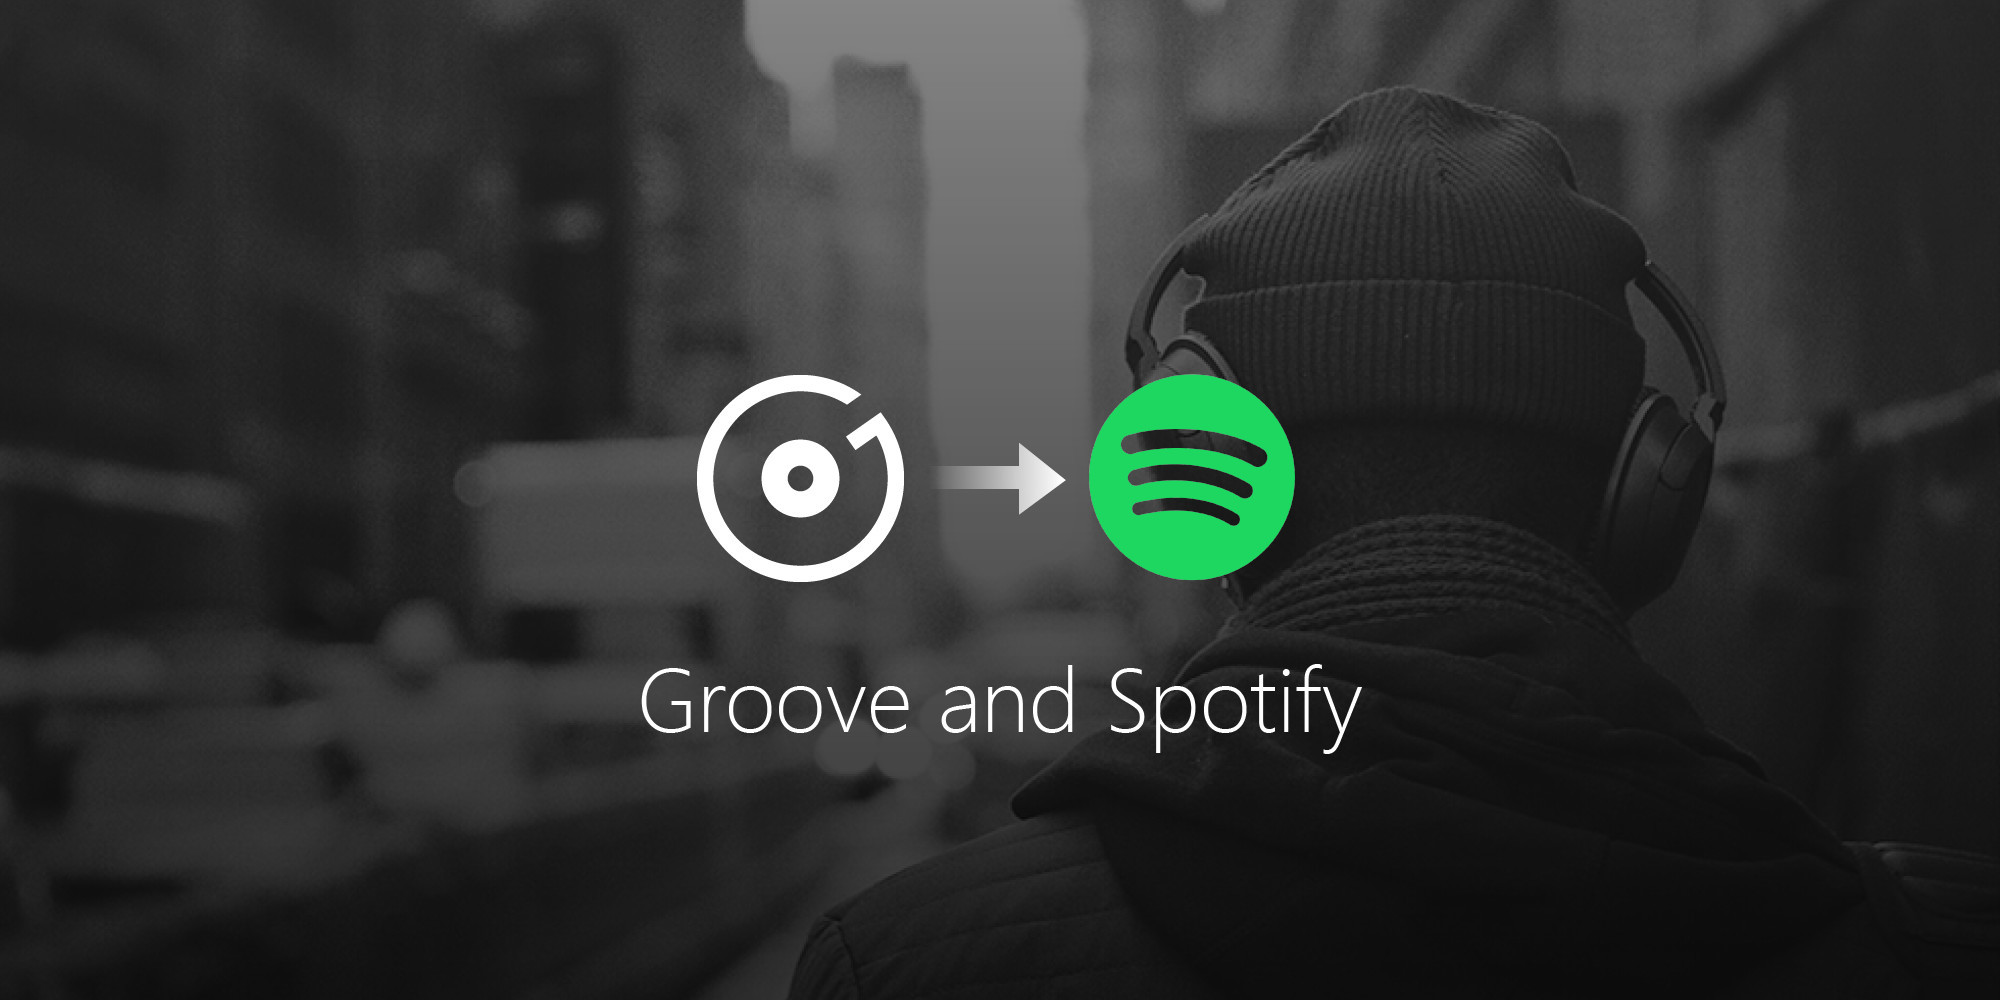 Here's how to move your music from OneDrive to Spotify